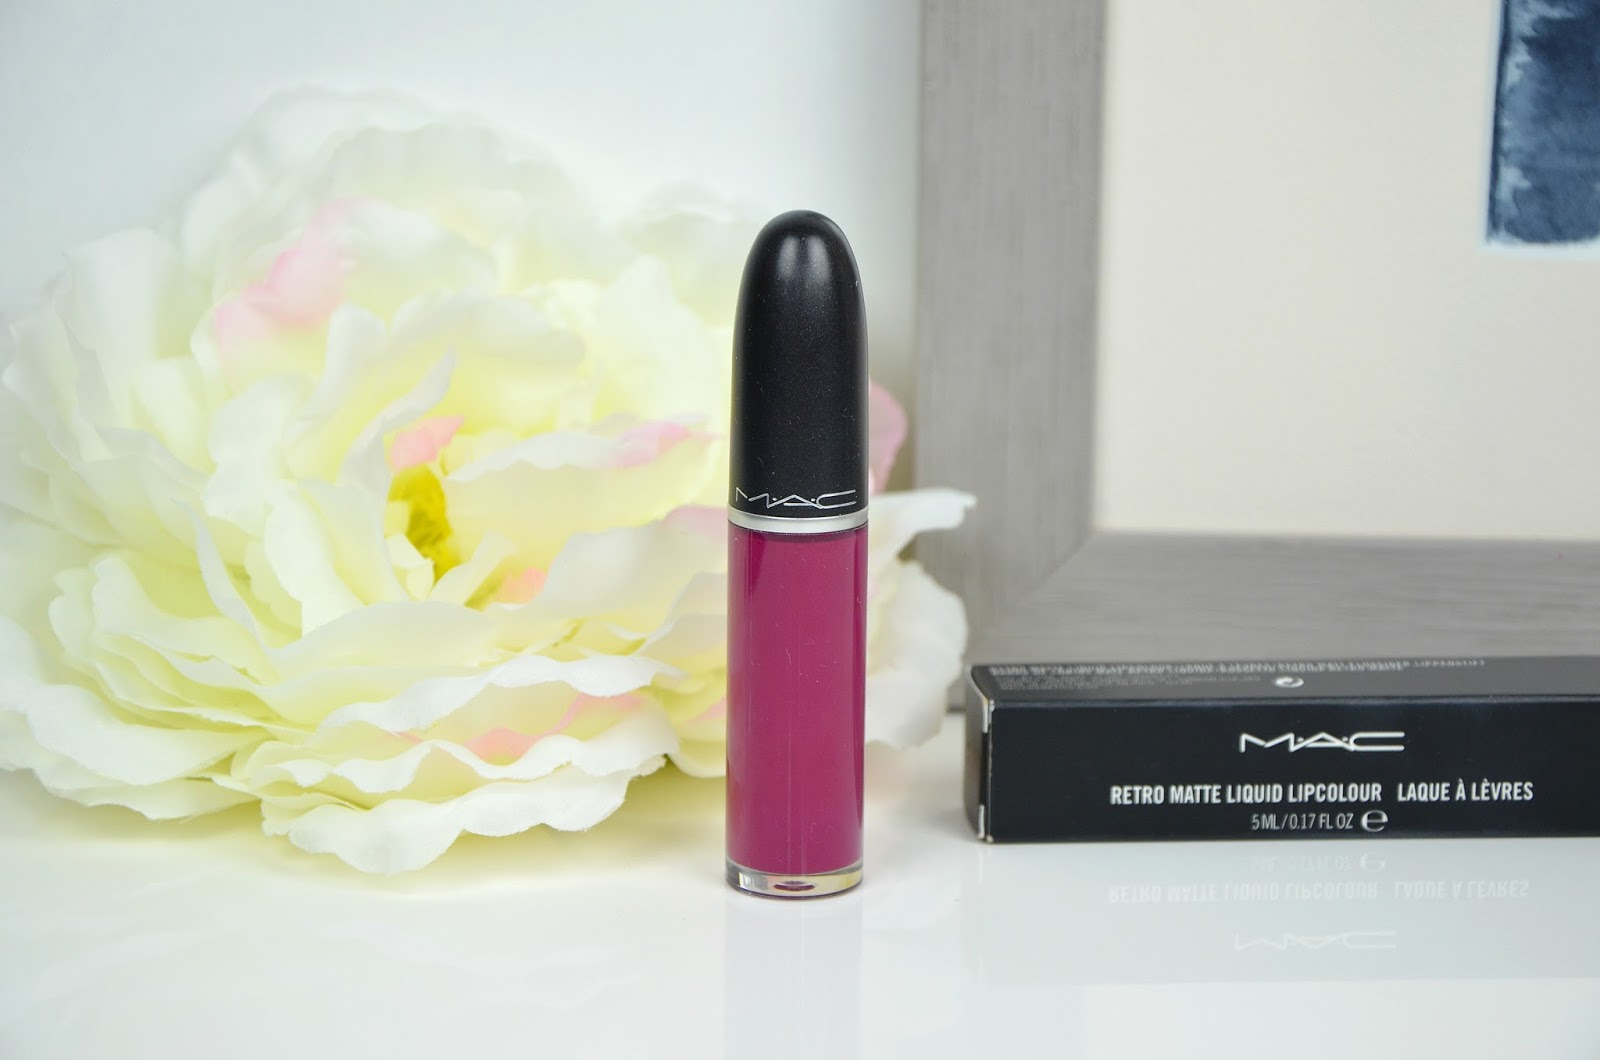 Oh, Lady Retro matte liquid lipcolour MAC